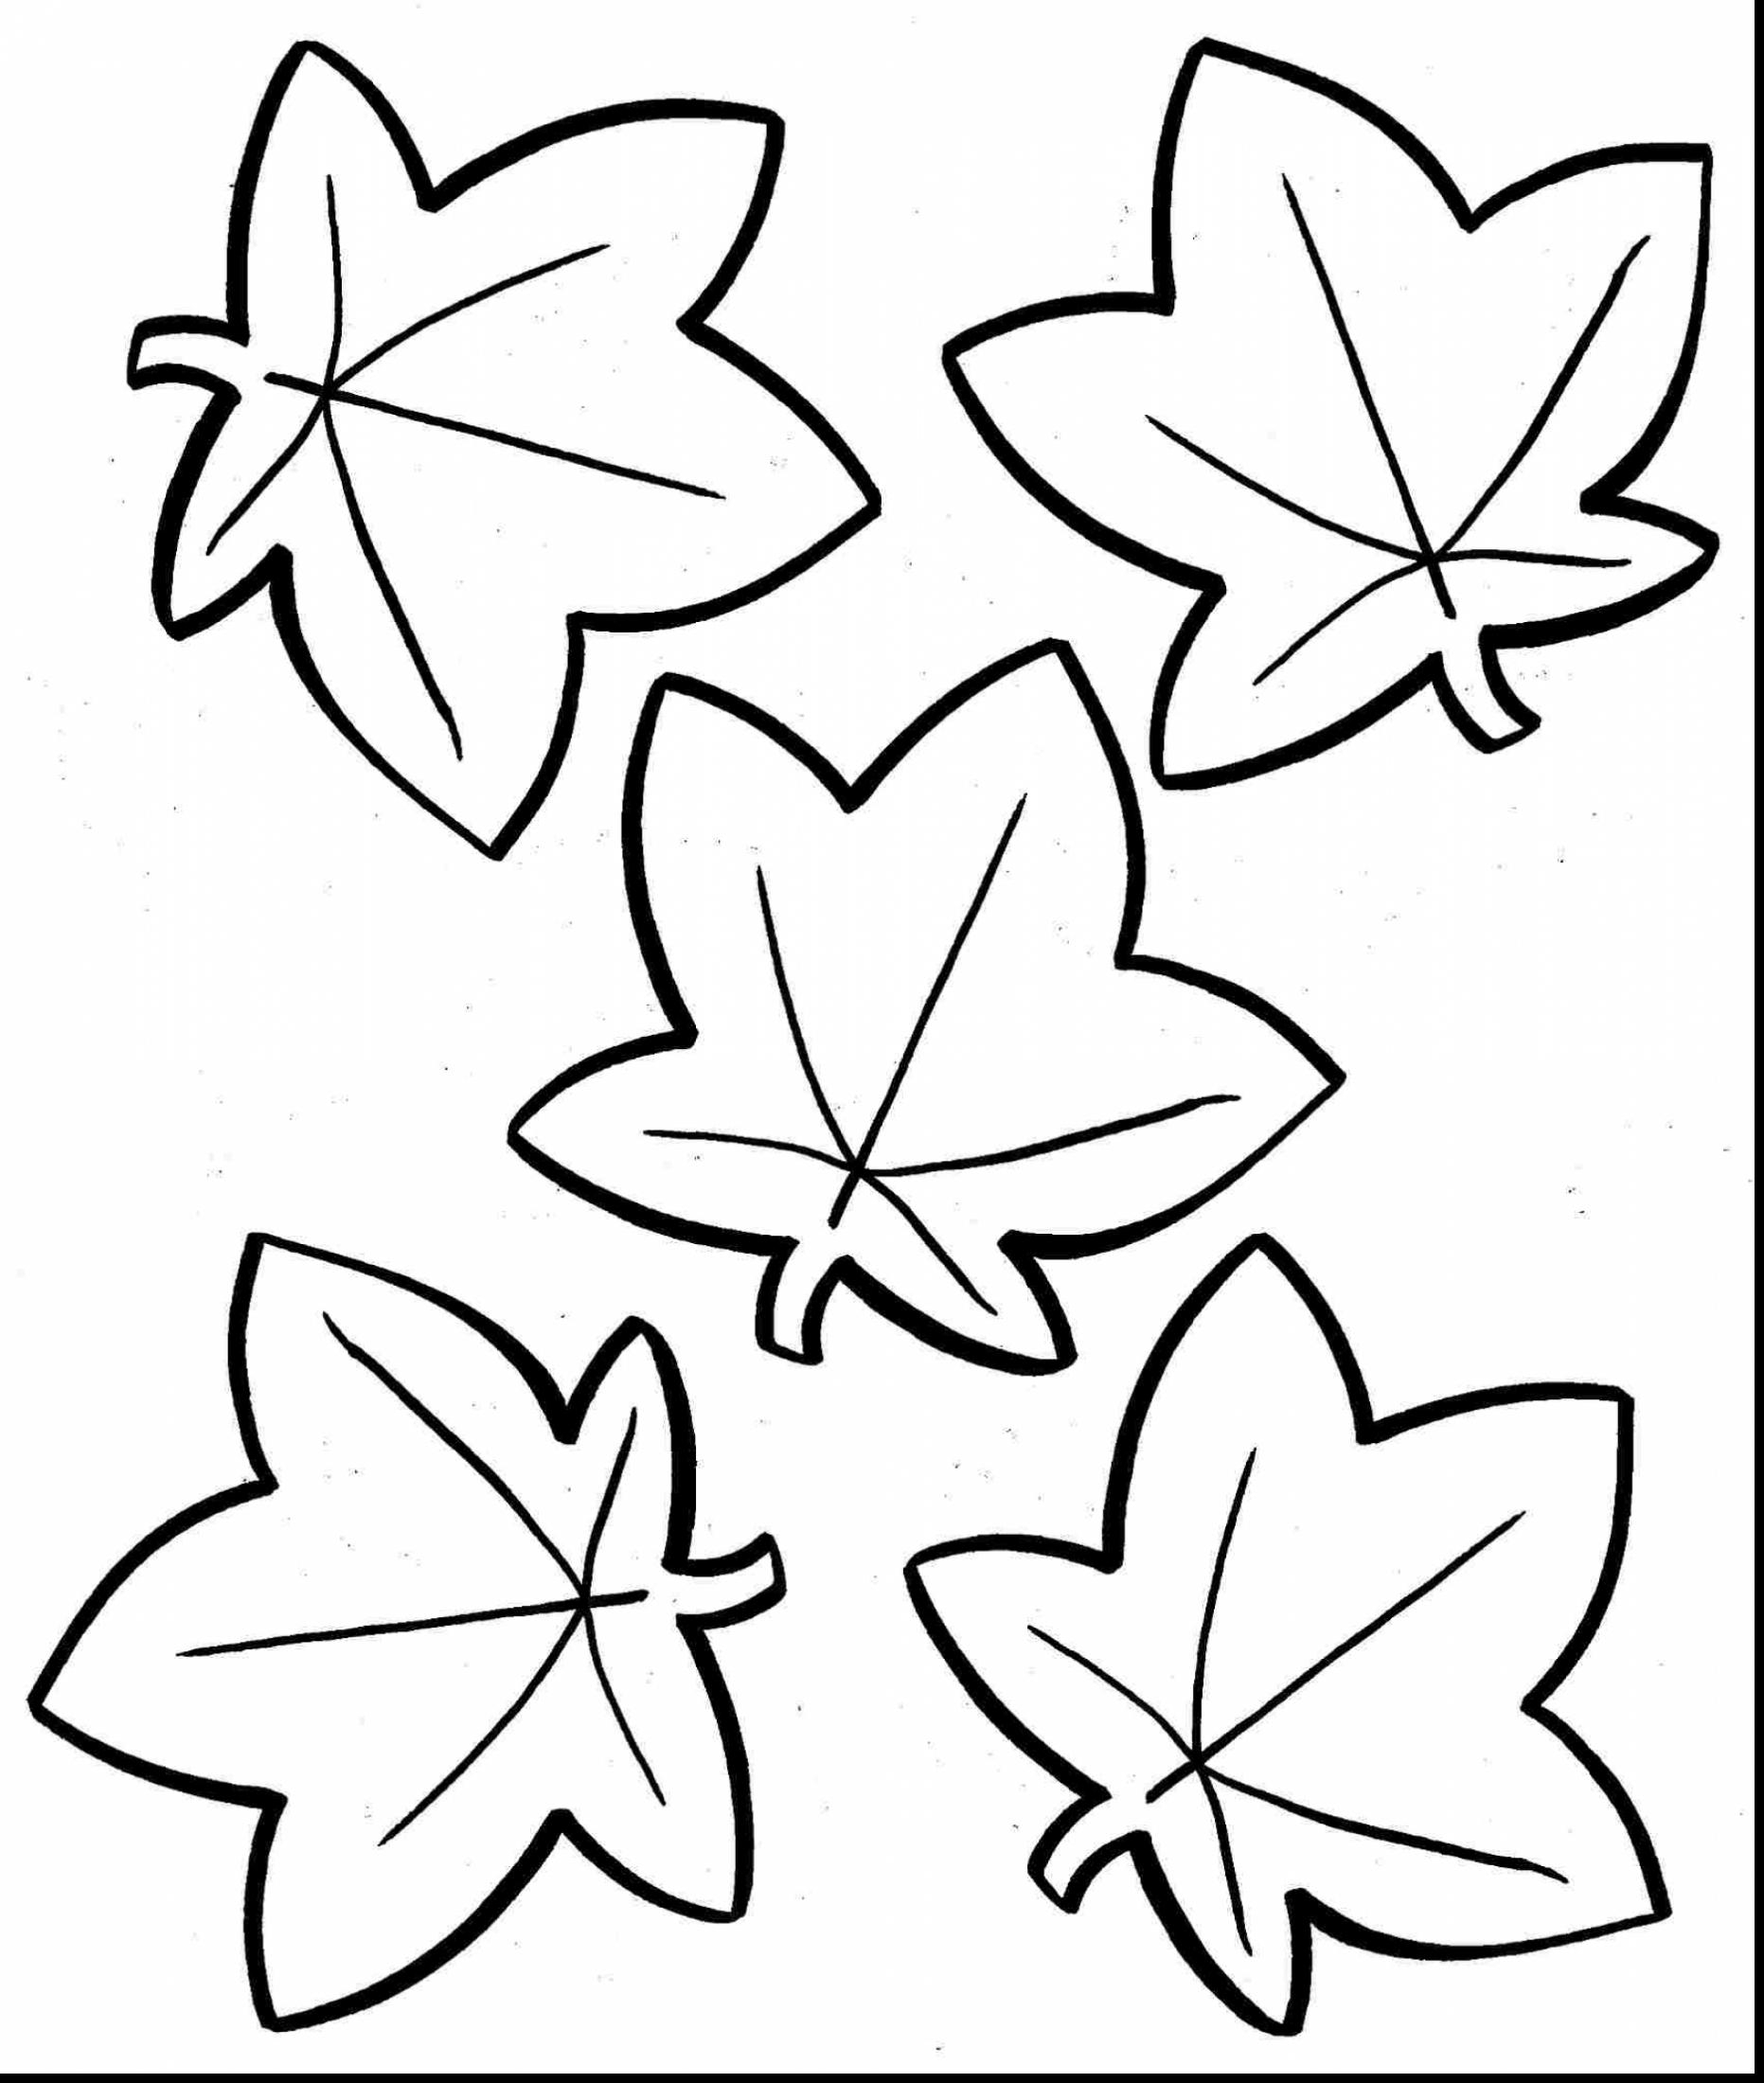 Leaf Coloring Pages for Preschool Gallery Of Christmas Coloring Pages Free to Print